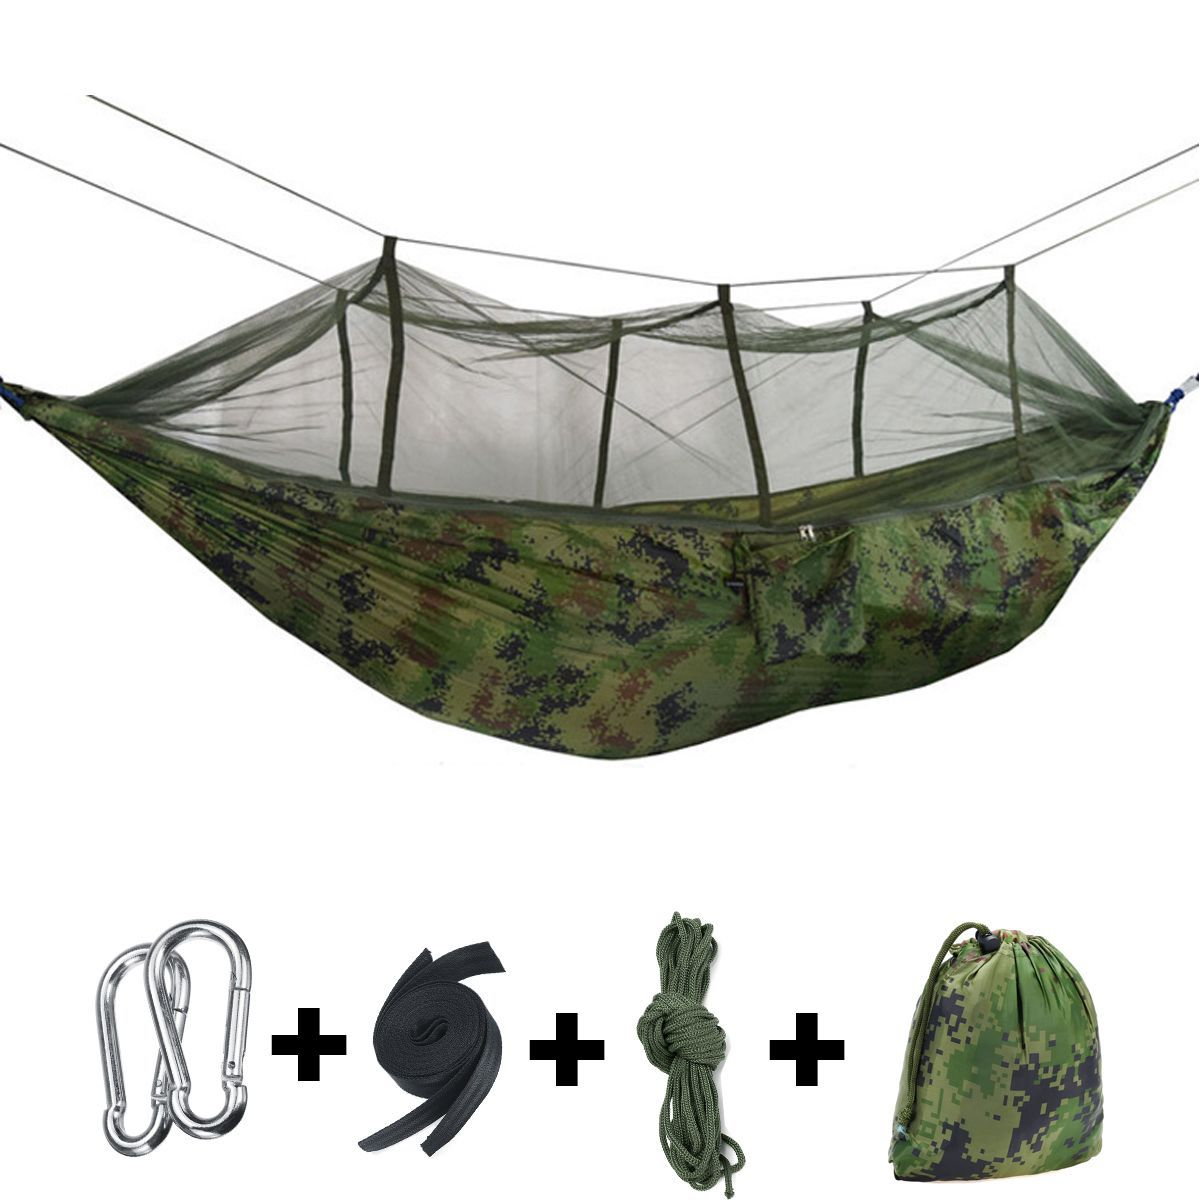 Ipree® 2 person camping hammock tent with mosquito net